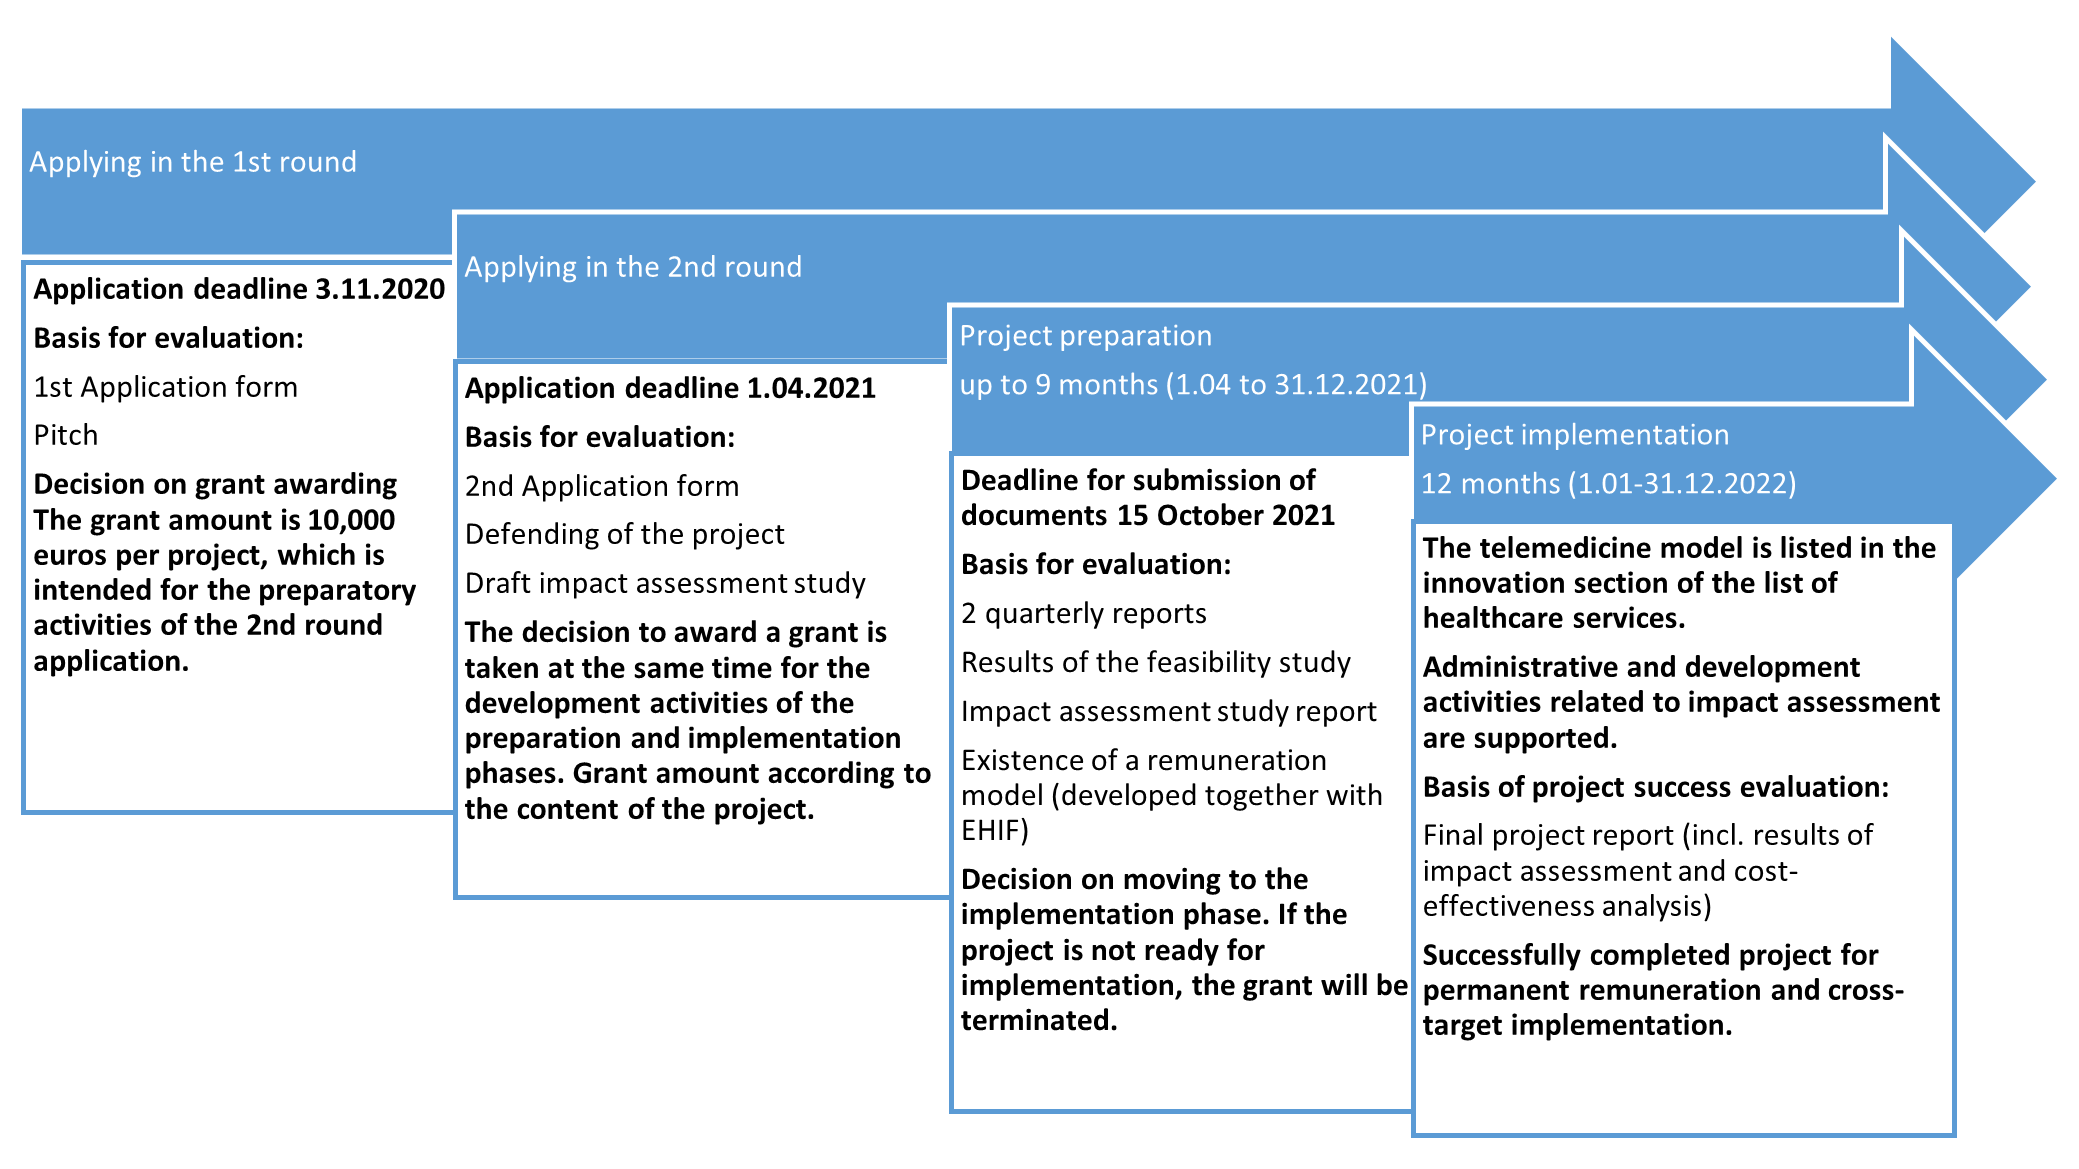 Figure 1. Structure of the pilot projects competition